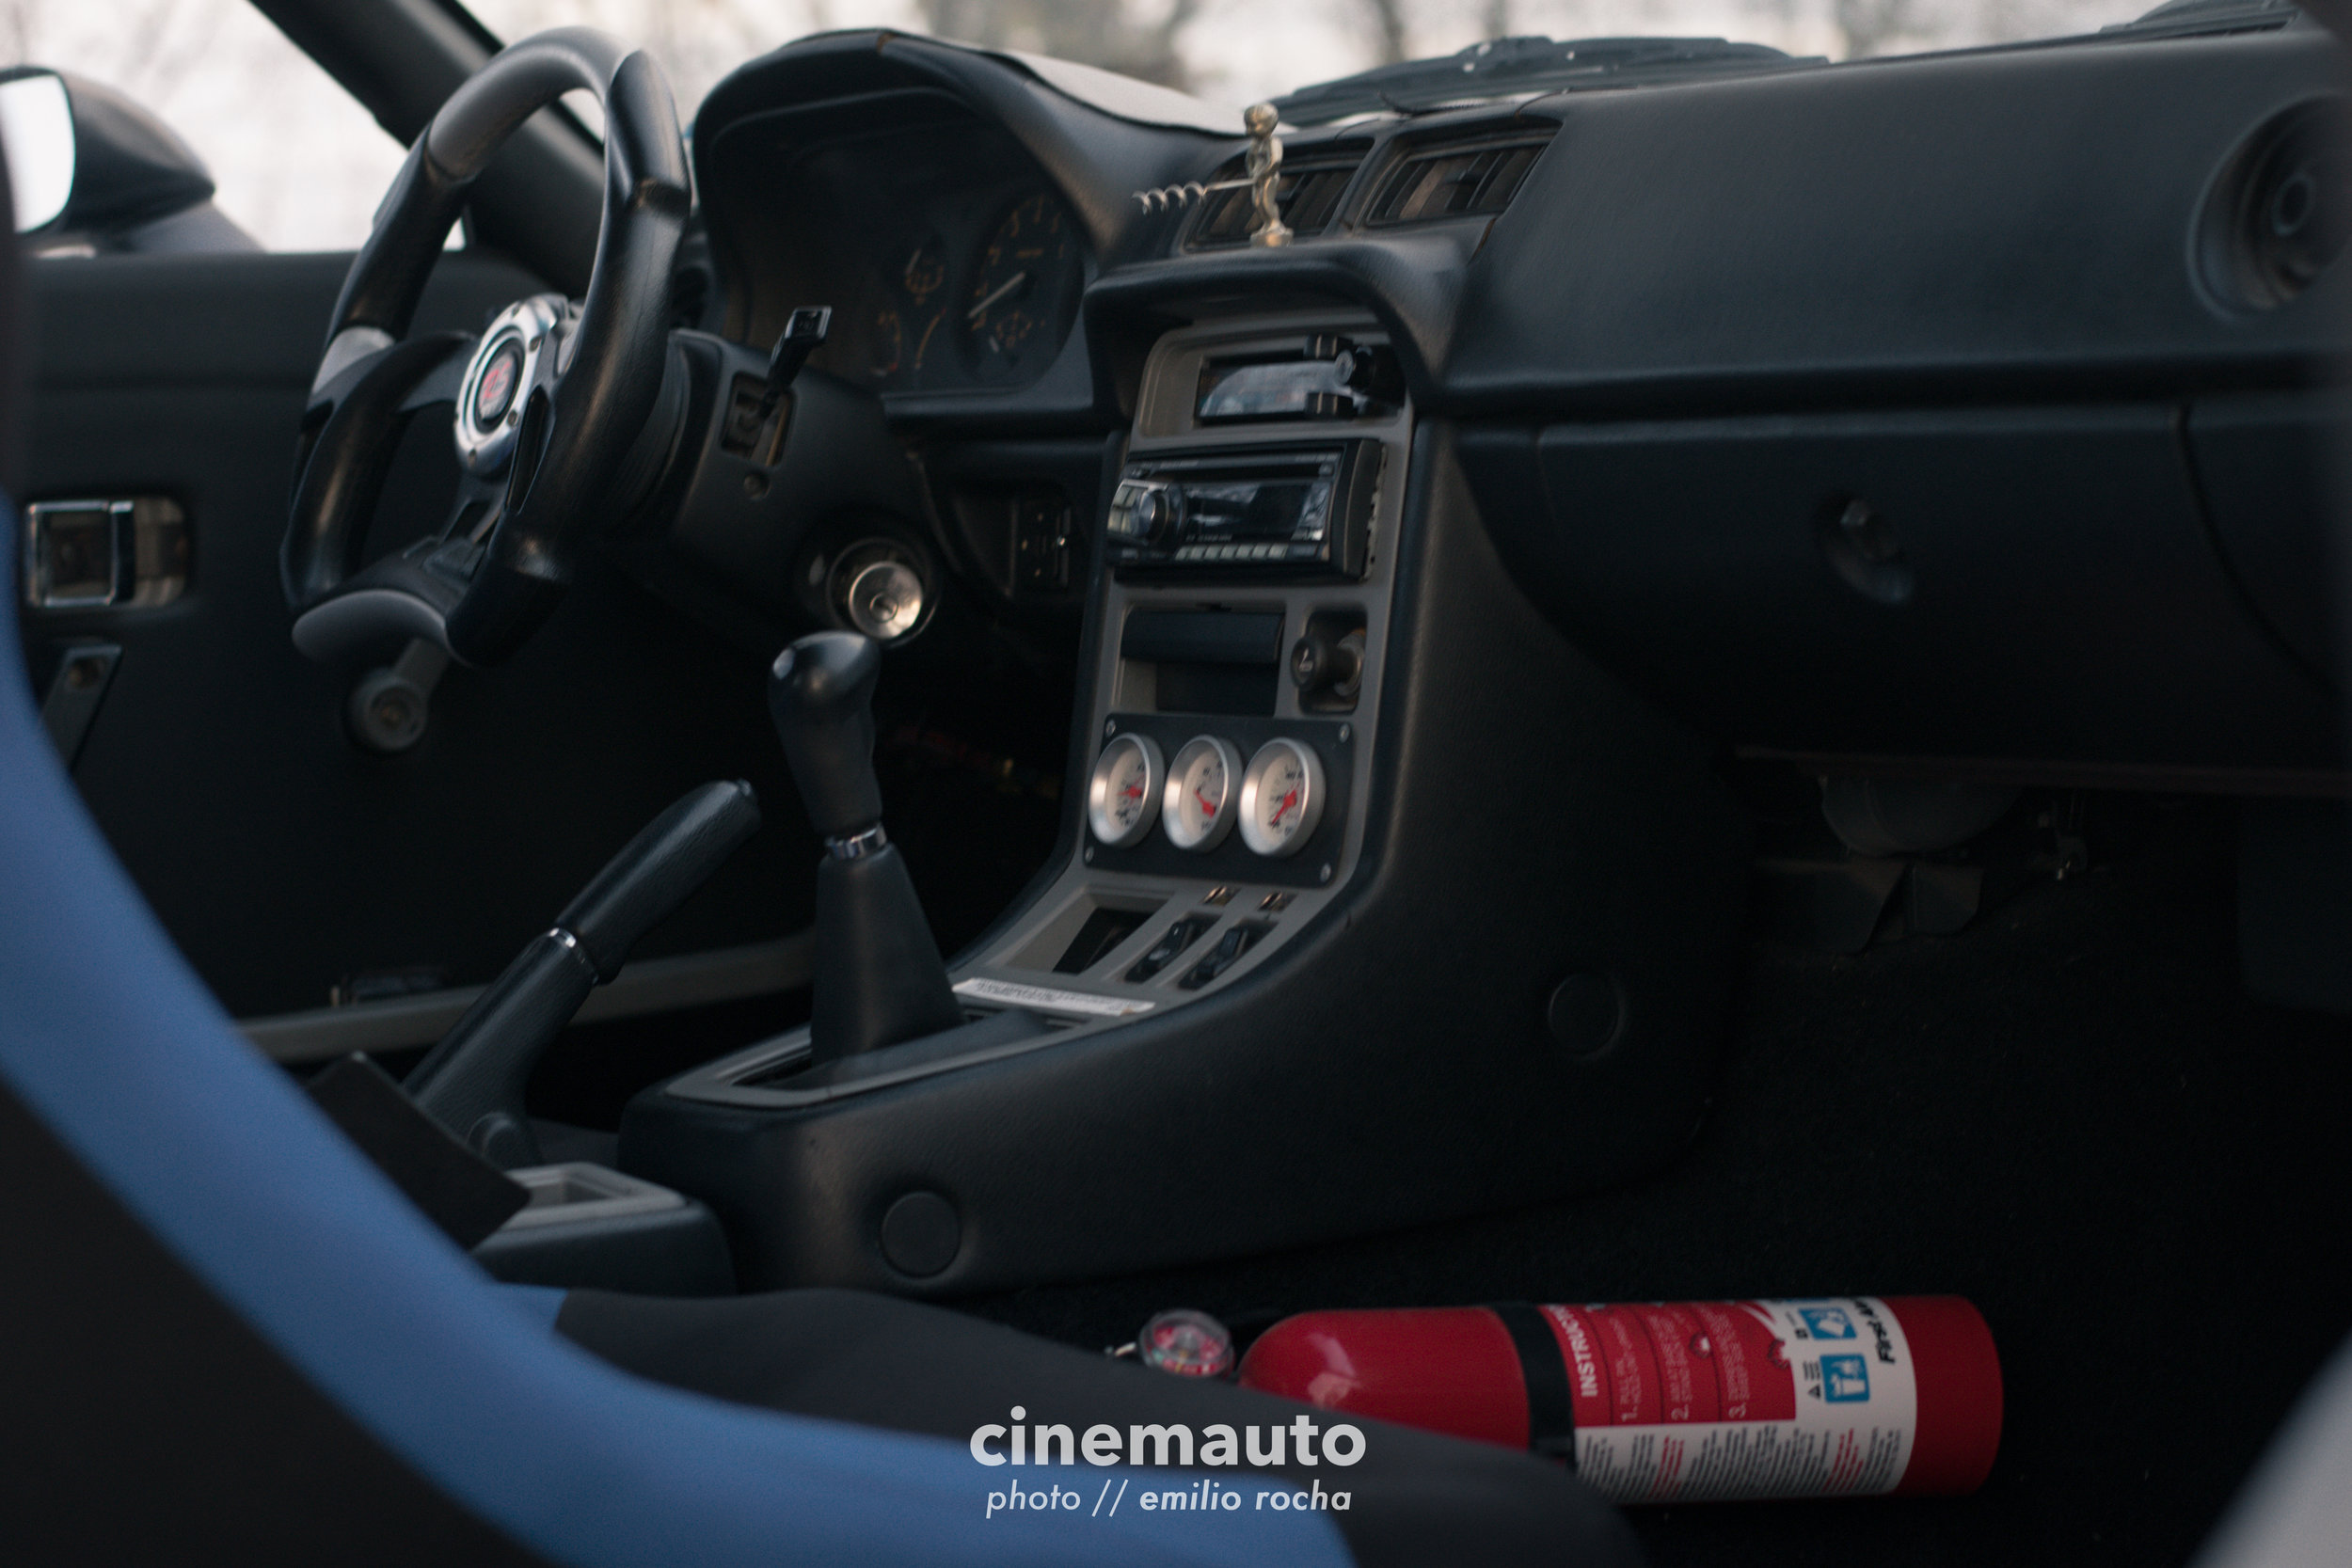 Cinemauto-RX7-13.jpg